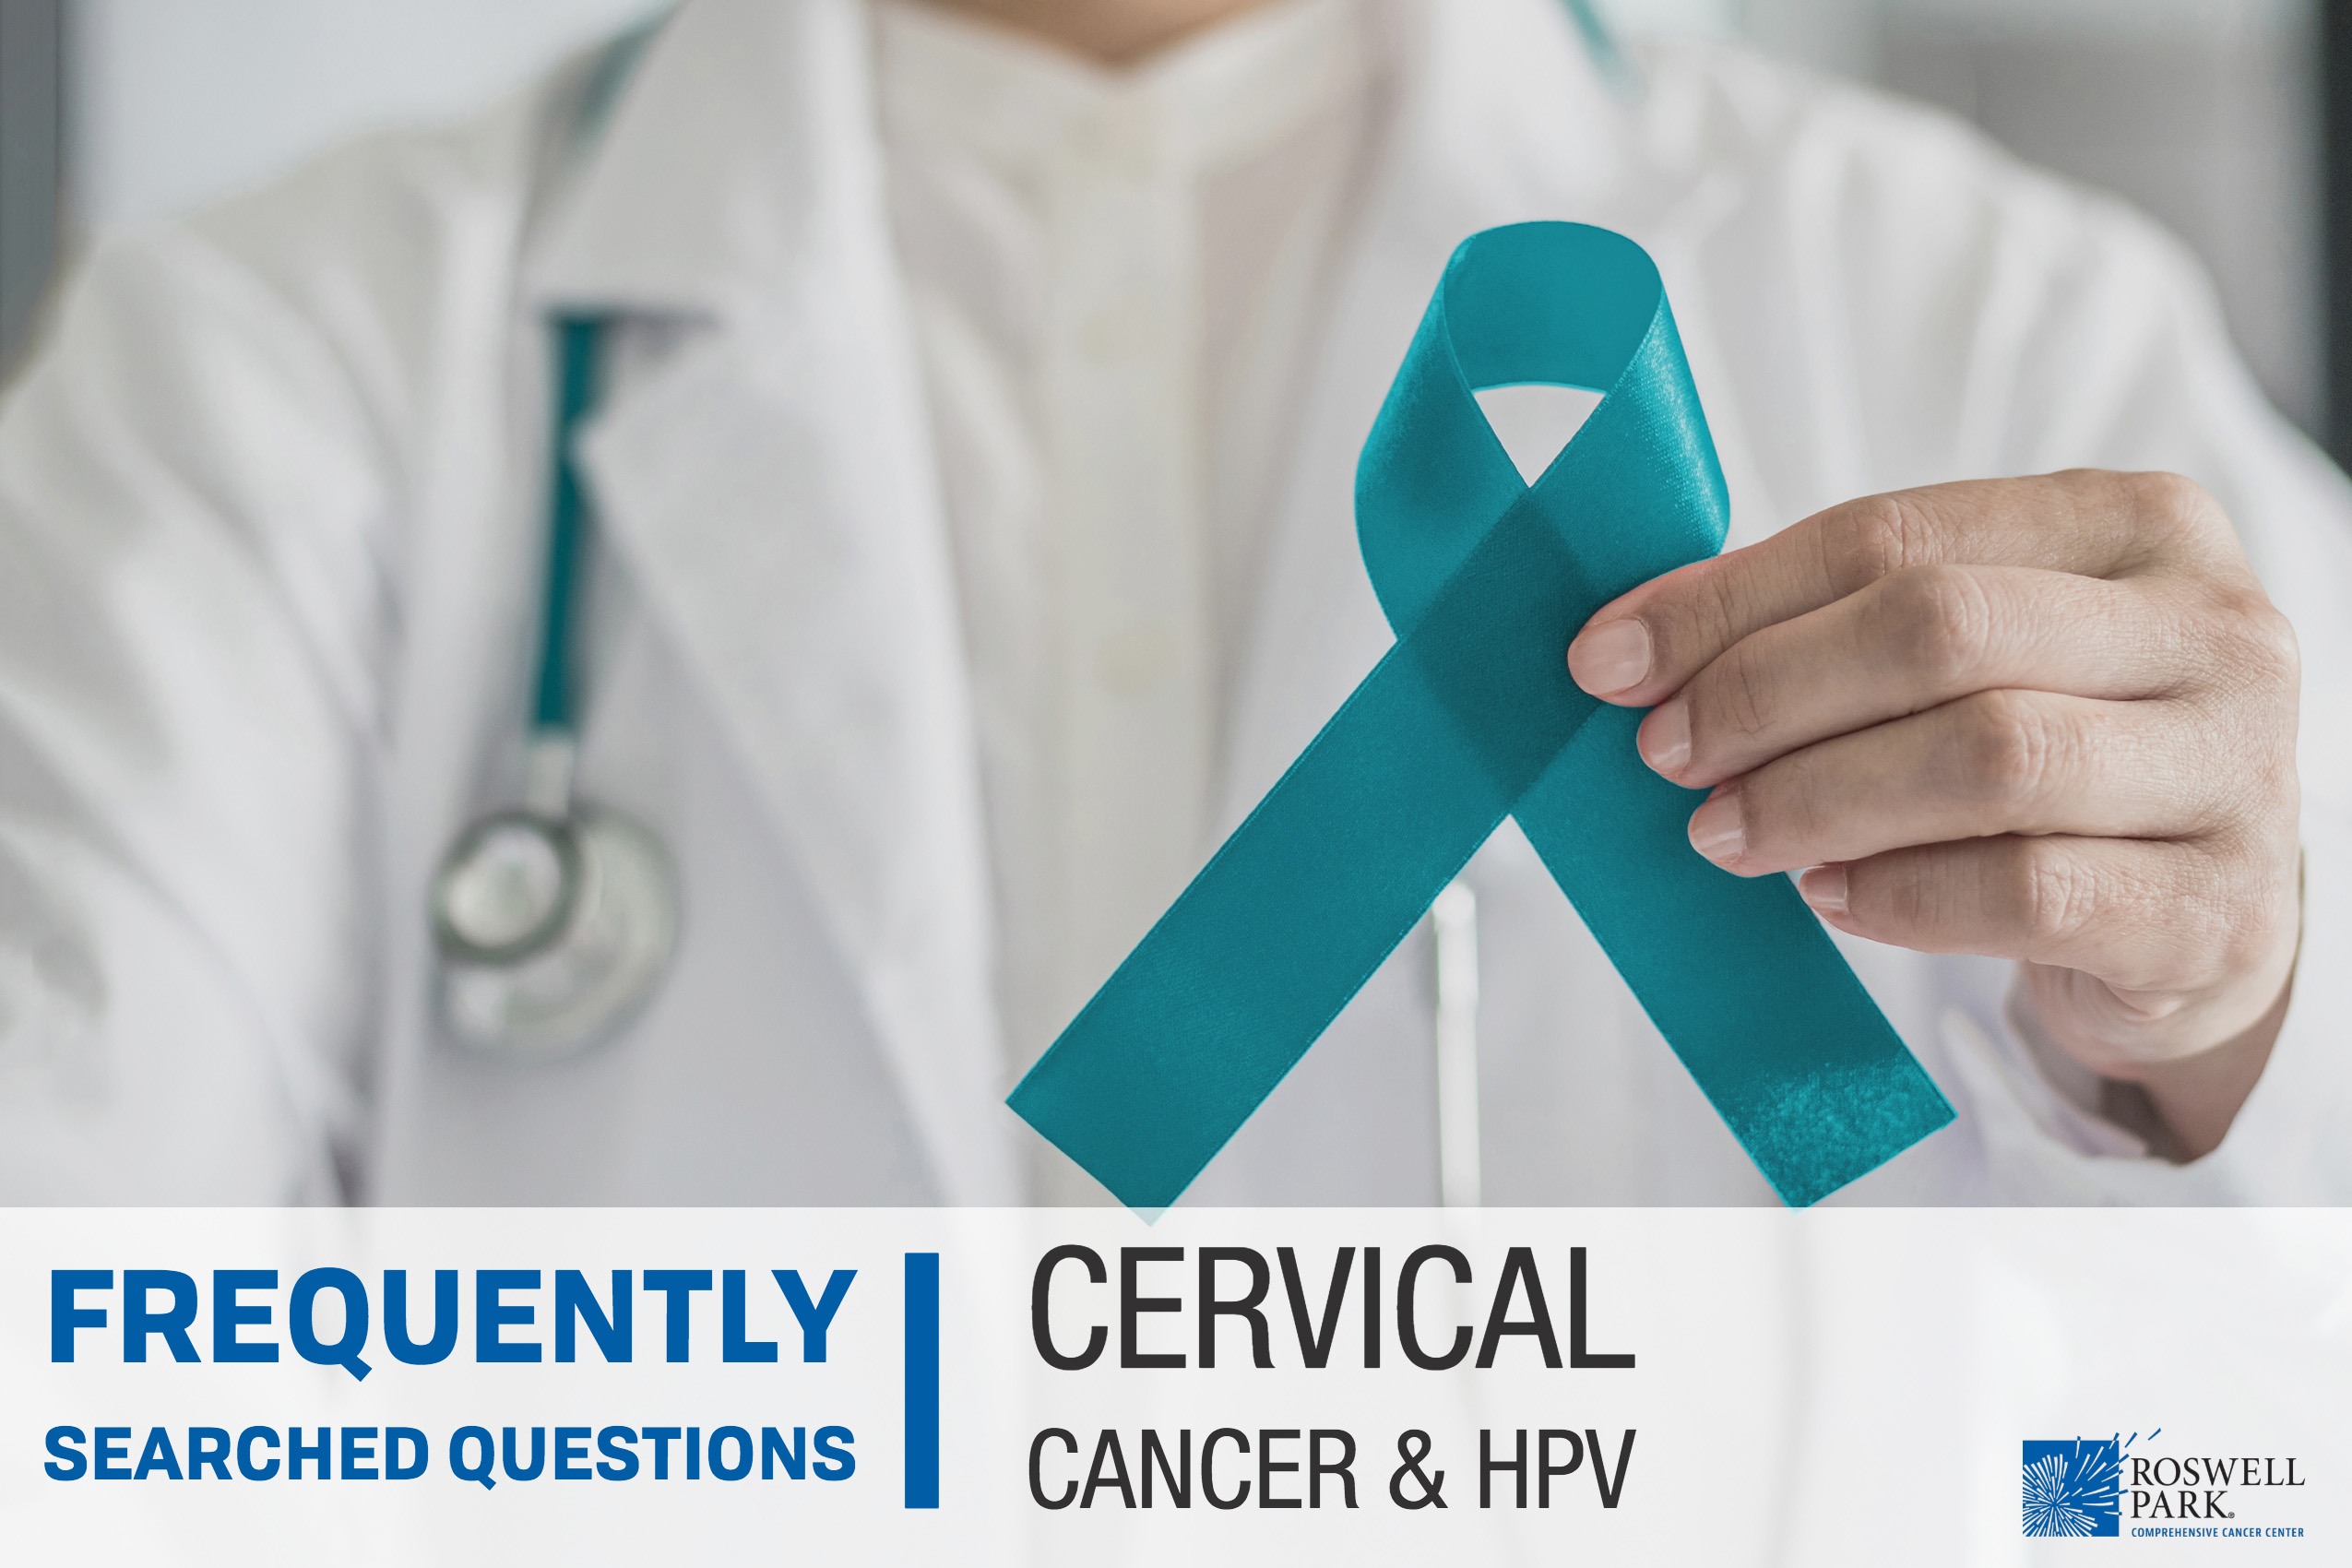 cfc05d2b05 Frequently Searched Questions  Cervical Cancer and HPV